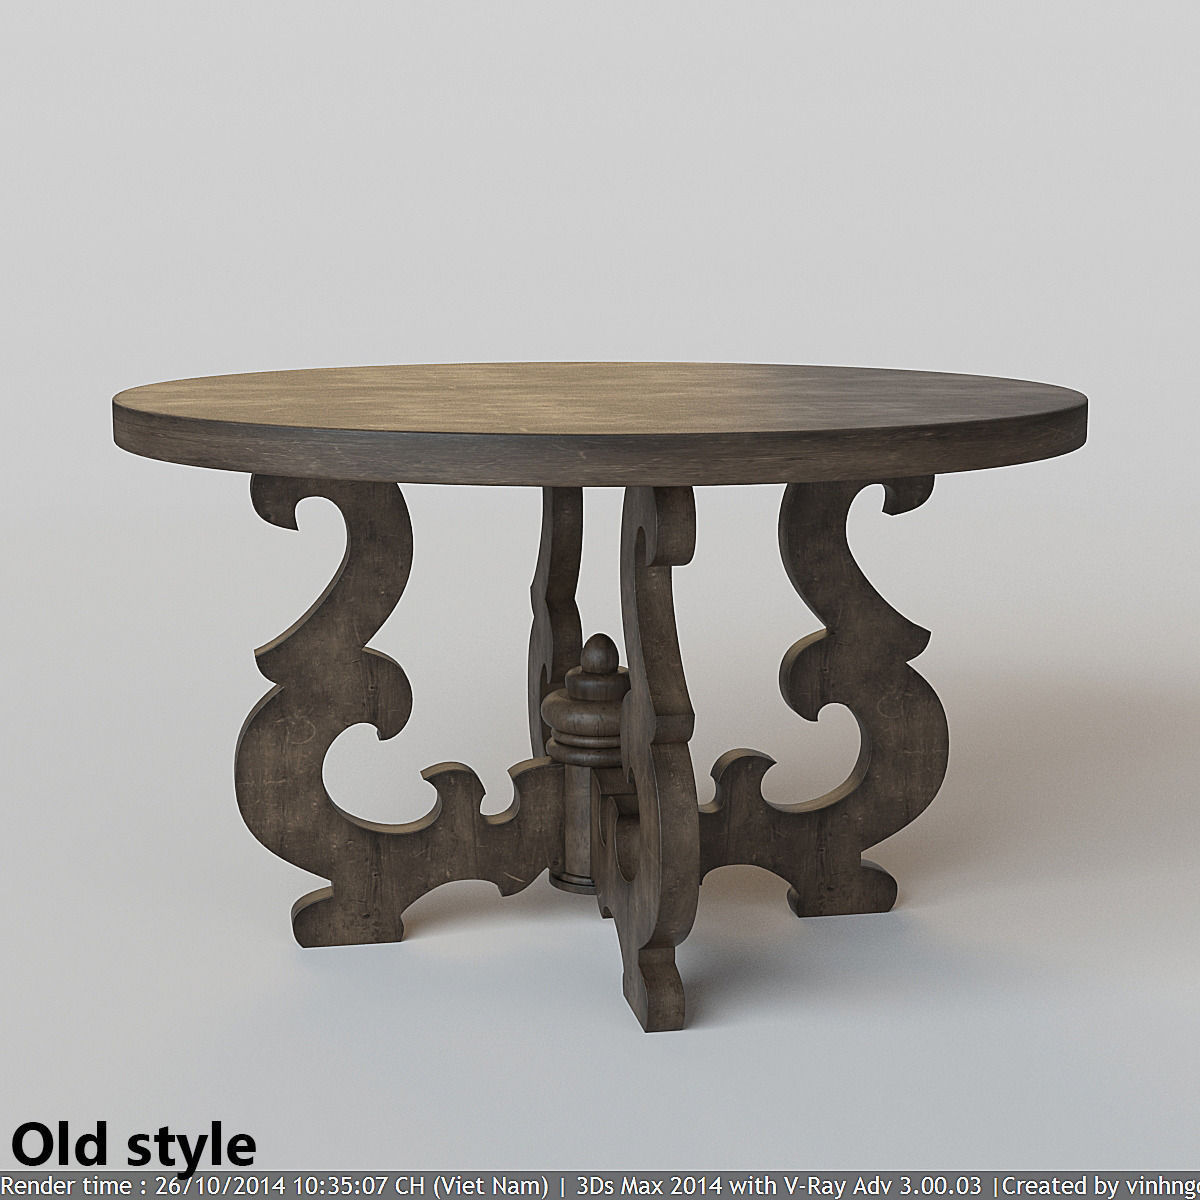 French Country Round Dining Table 3D Model MAX FBX  : french country round dining table 3d model max fbx from www.cgtrader.com size 1200 x 1200 jpeg 123kB